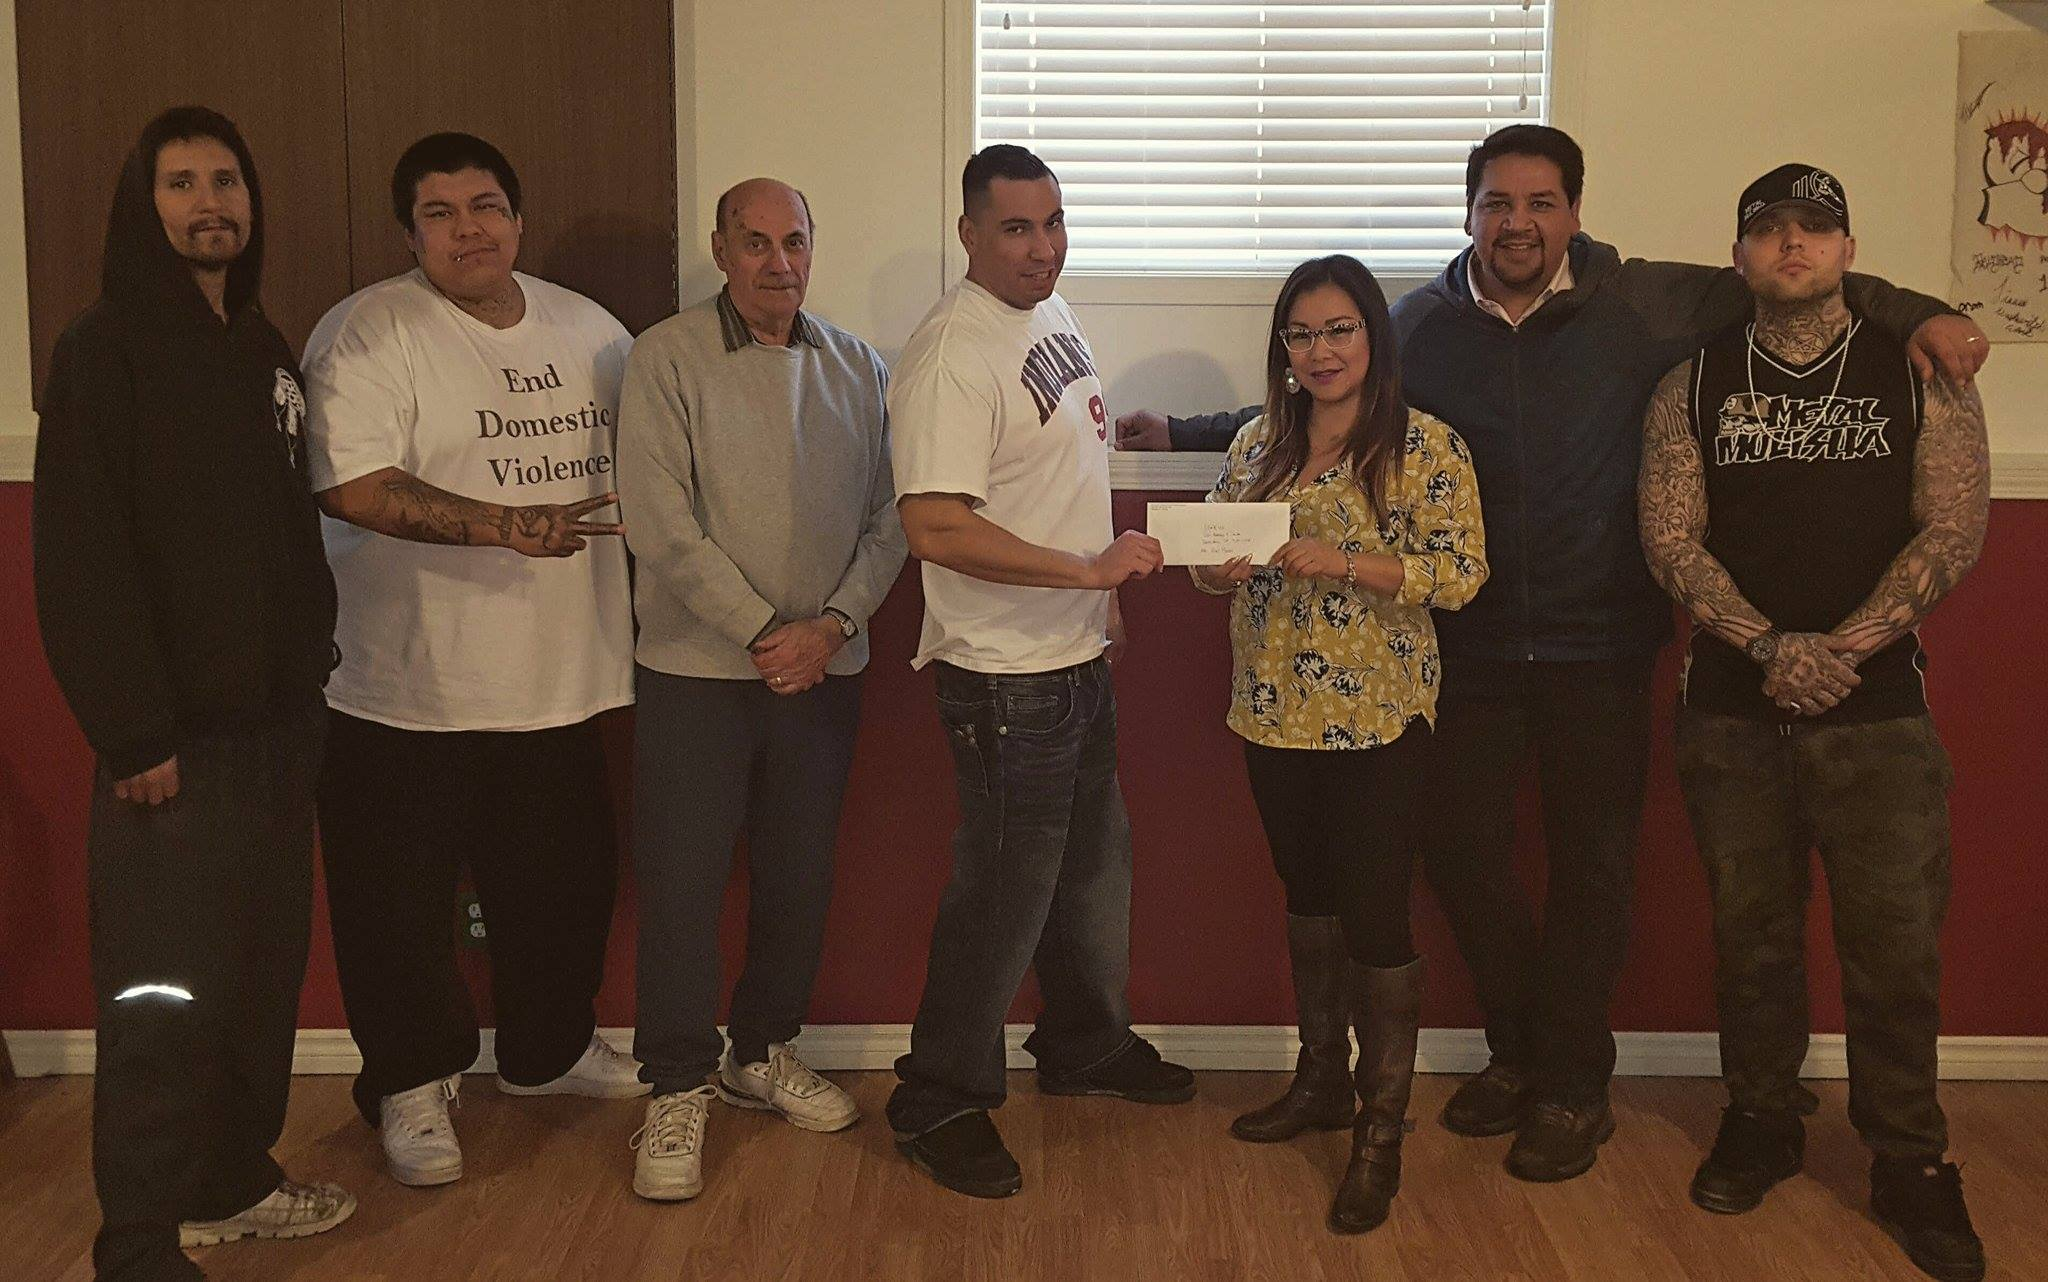 ASWFF's contribution of $25,000 was received by Str8-Up members Dale Isaac, Chris Moyah, Father Andre, Dave Stephenson, Tara Worme, Alex Munoz and Brad Christianson. Picture taken by Shane Taysup.